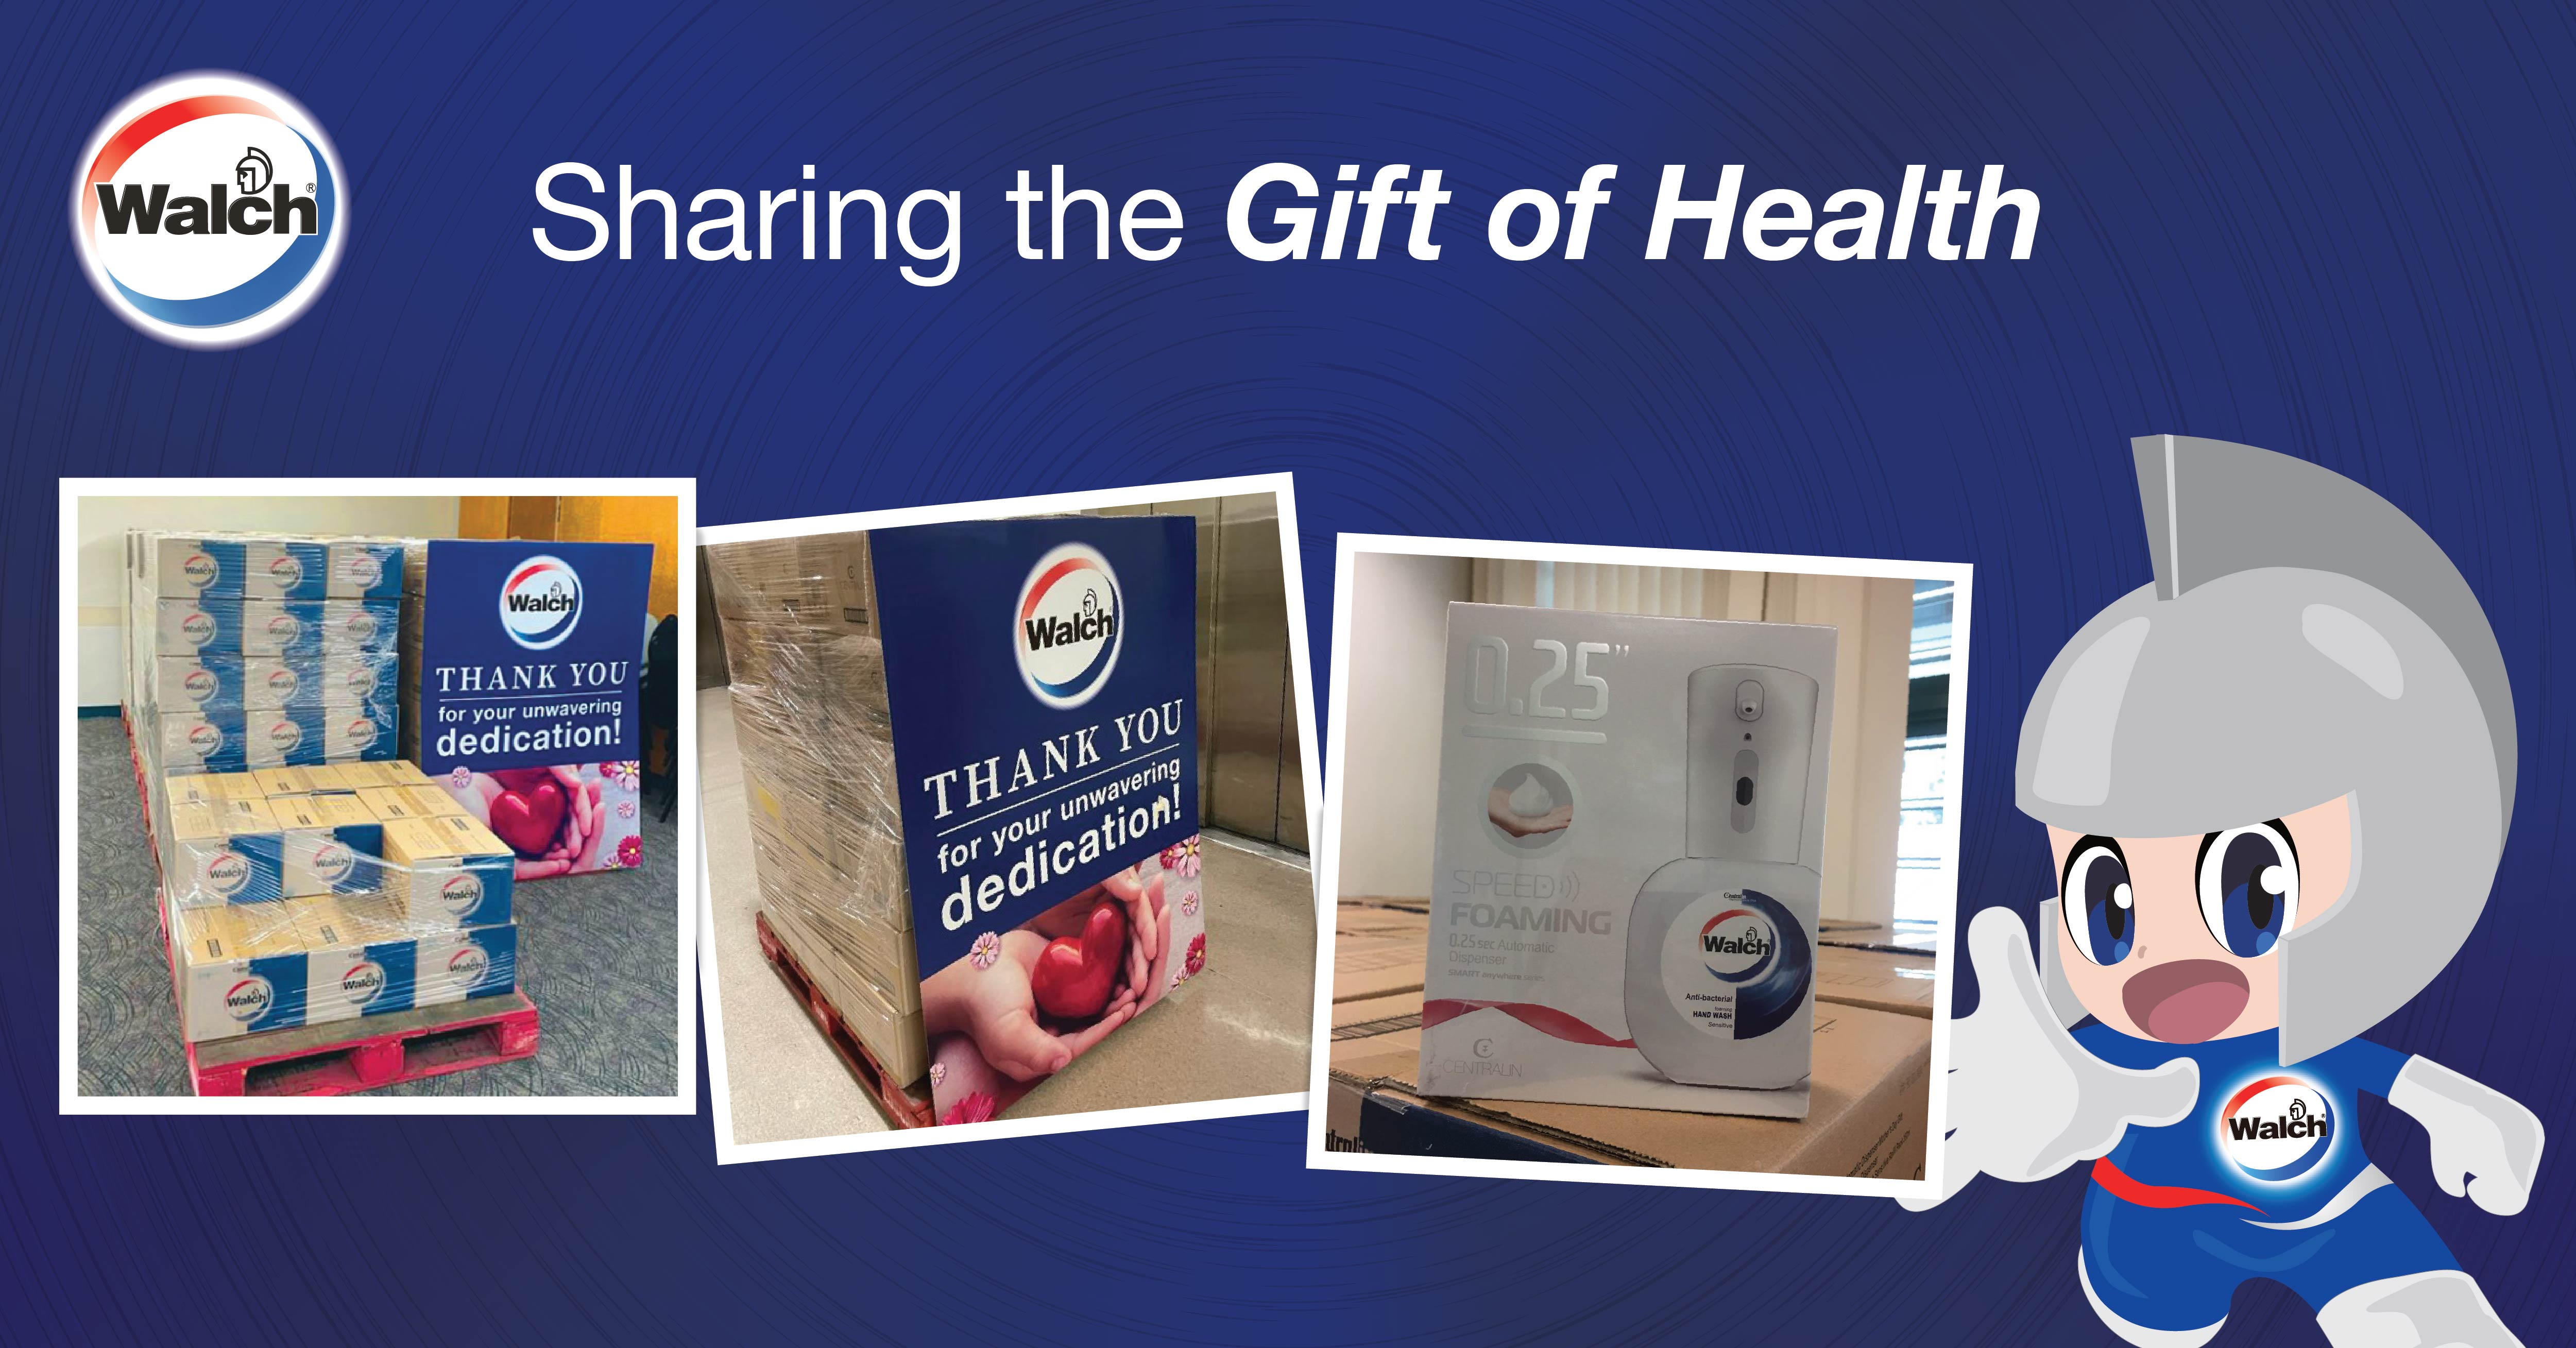 Walch® Singapore Provides our Nurses with the Gift of Health